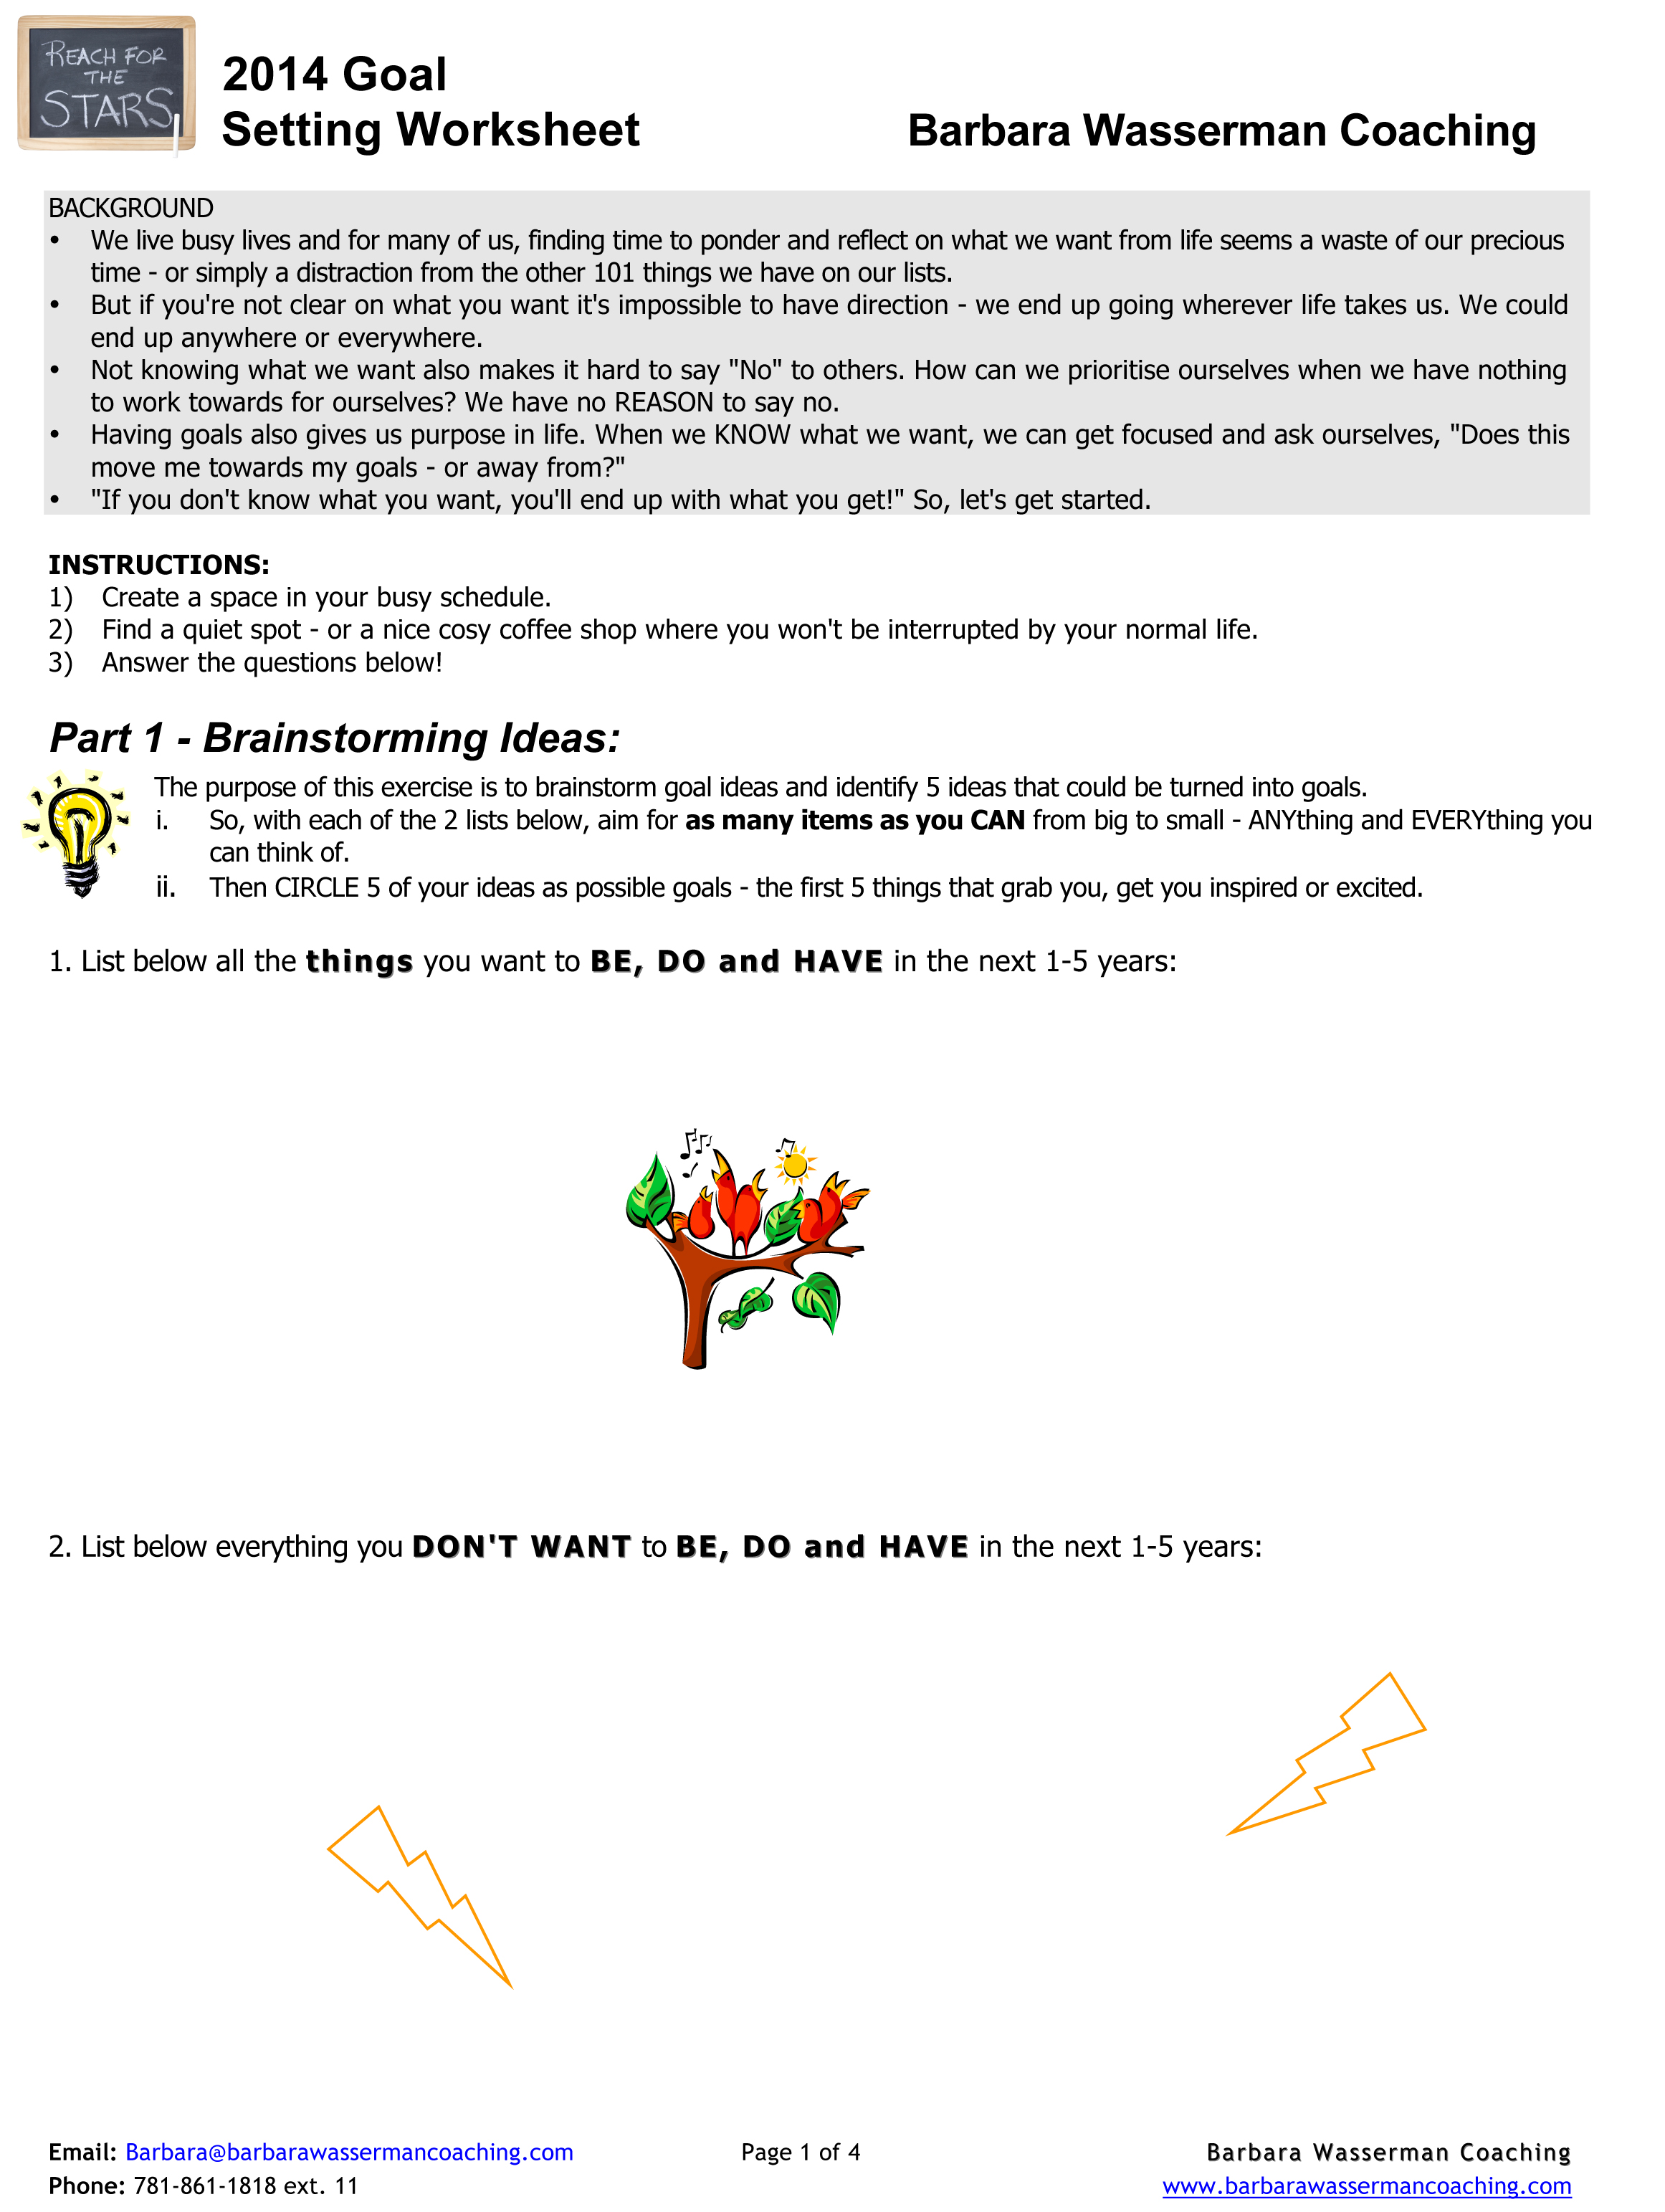 barbara's 2014_goal-setting_worksheet